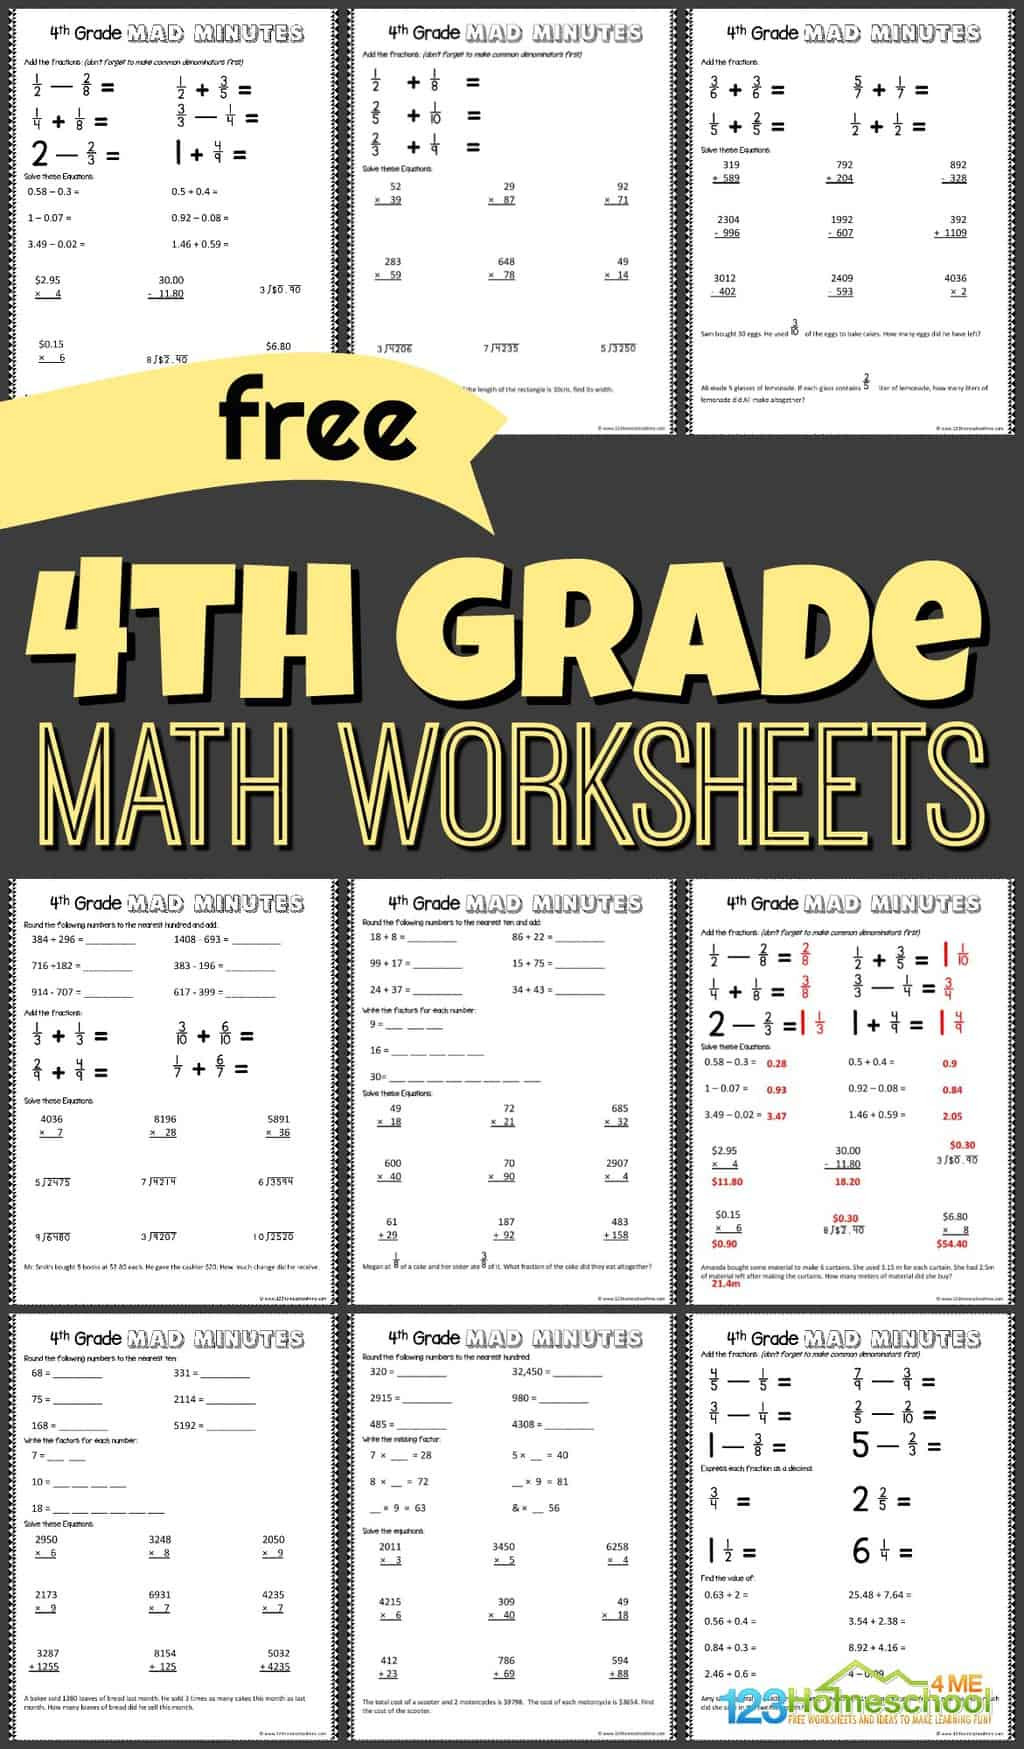 Go Math Grade 4 Worksheets Free 4th Grade Math Worksheets for Fourth Graders to Practice